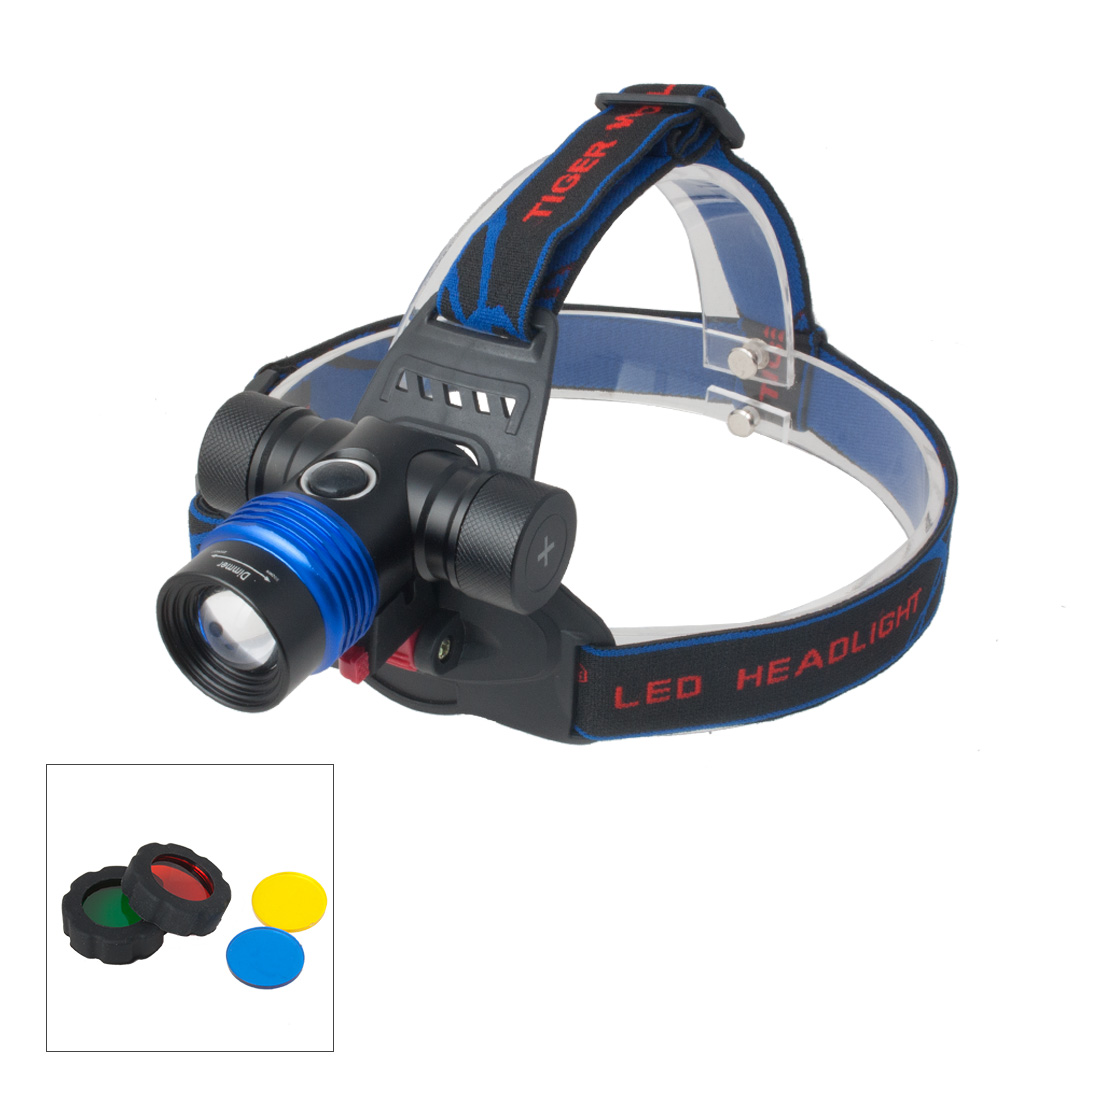 Zoom Adjustable Focus  Headlamp Bicycle Light Torch Lamp Super Bright 5 Modes